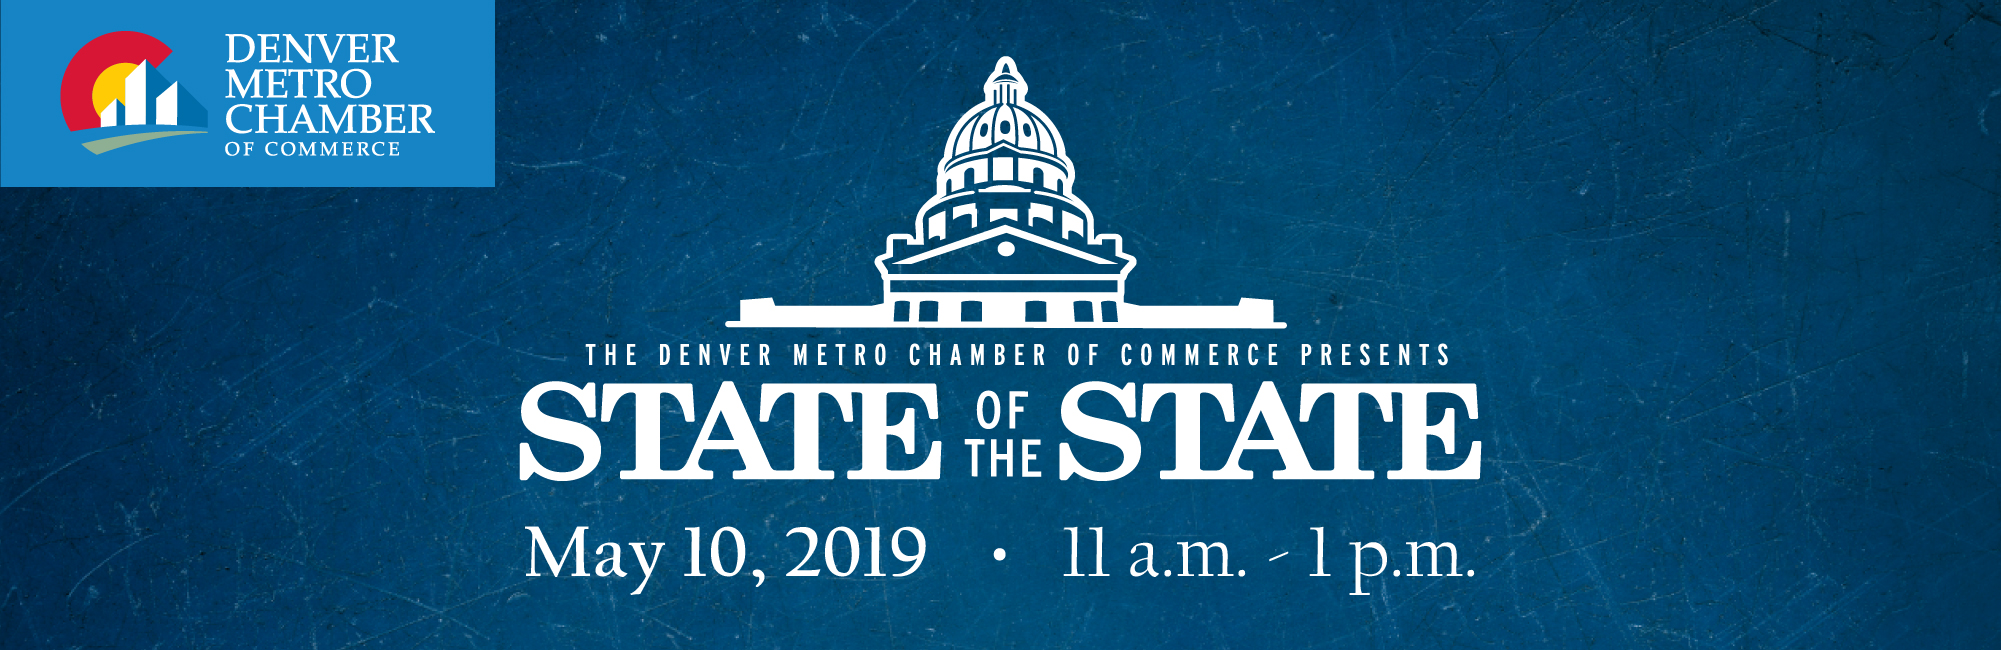 2019 State of the State Luncheon